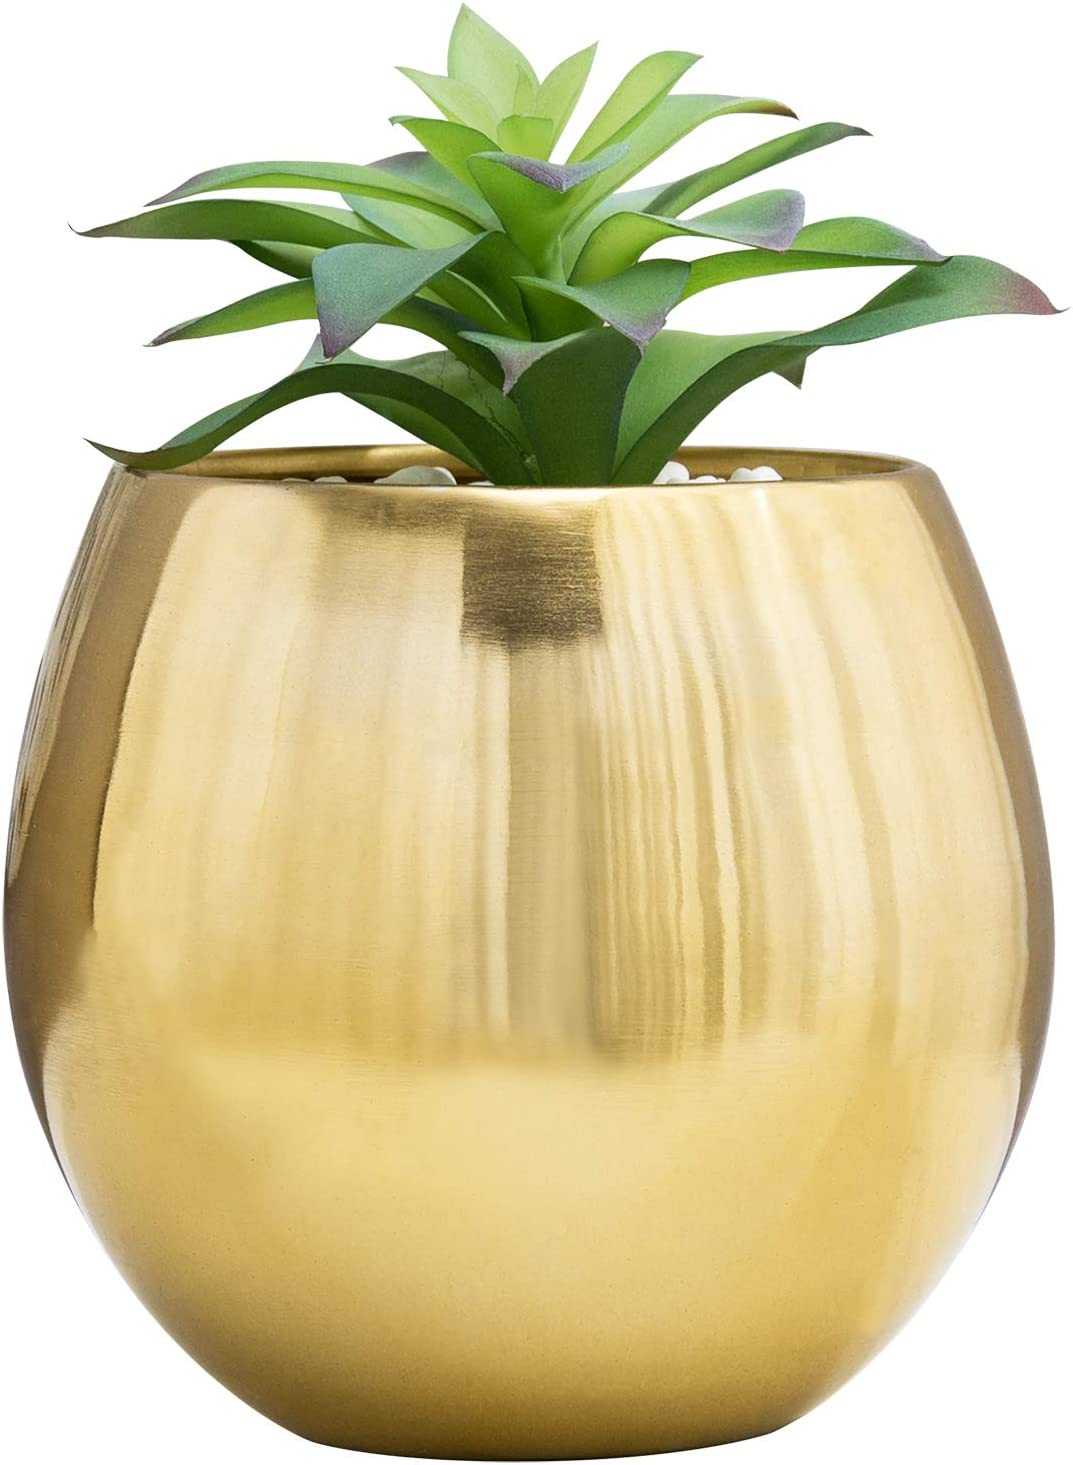 It is very popular MyGift 6-Inch Brushed NEW before selling ☆ Brass Plated Bowl-Shaped Succu Metal Round